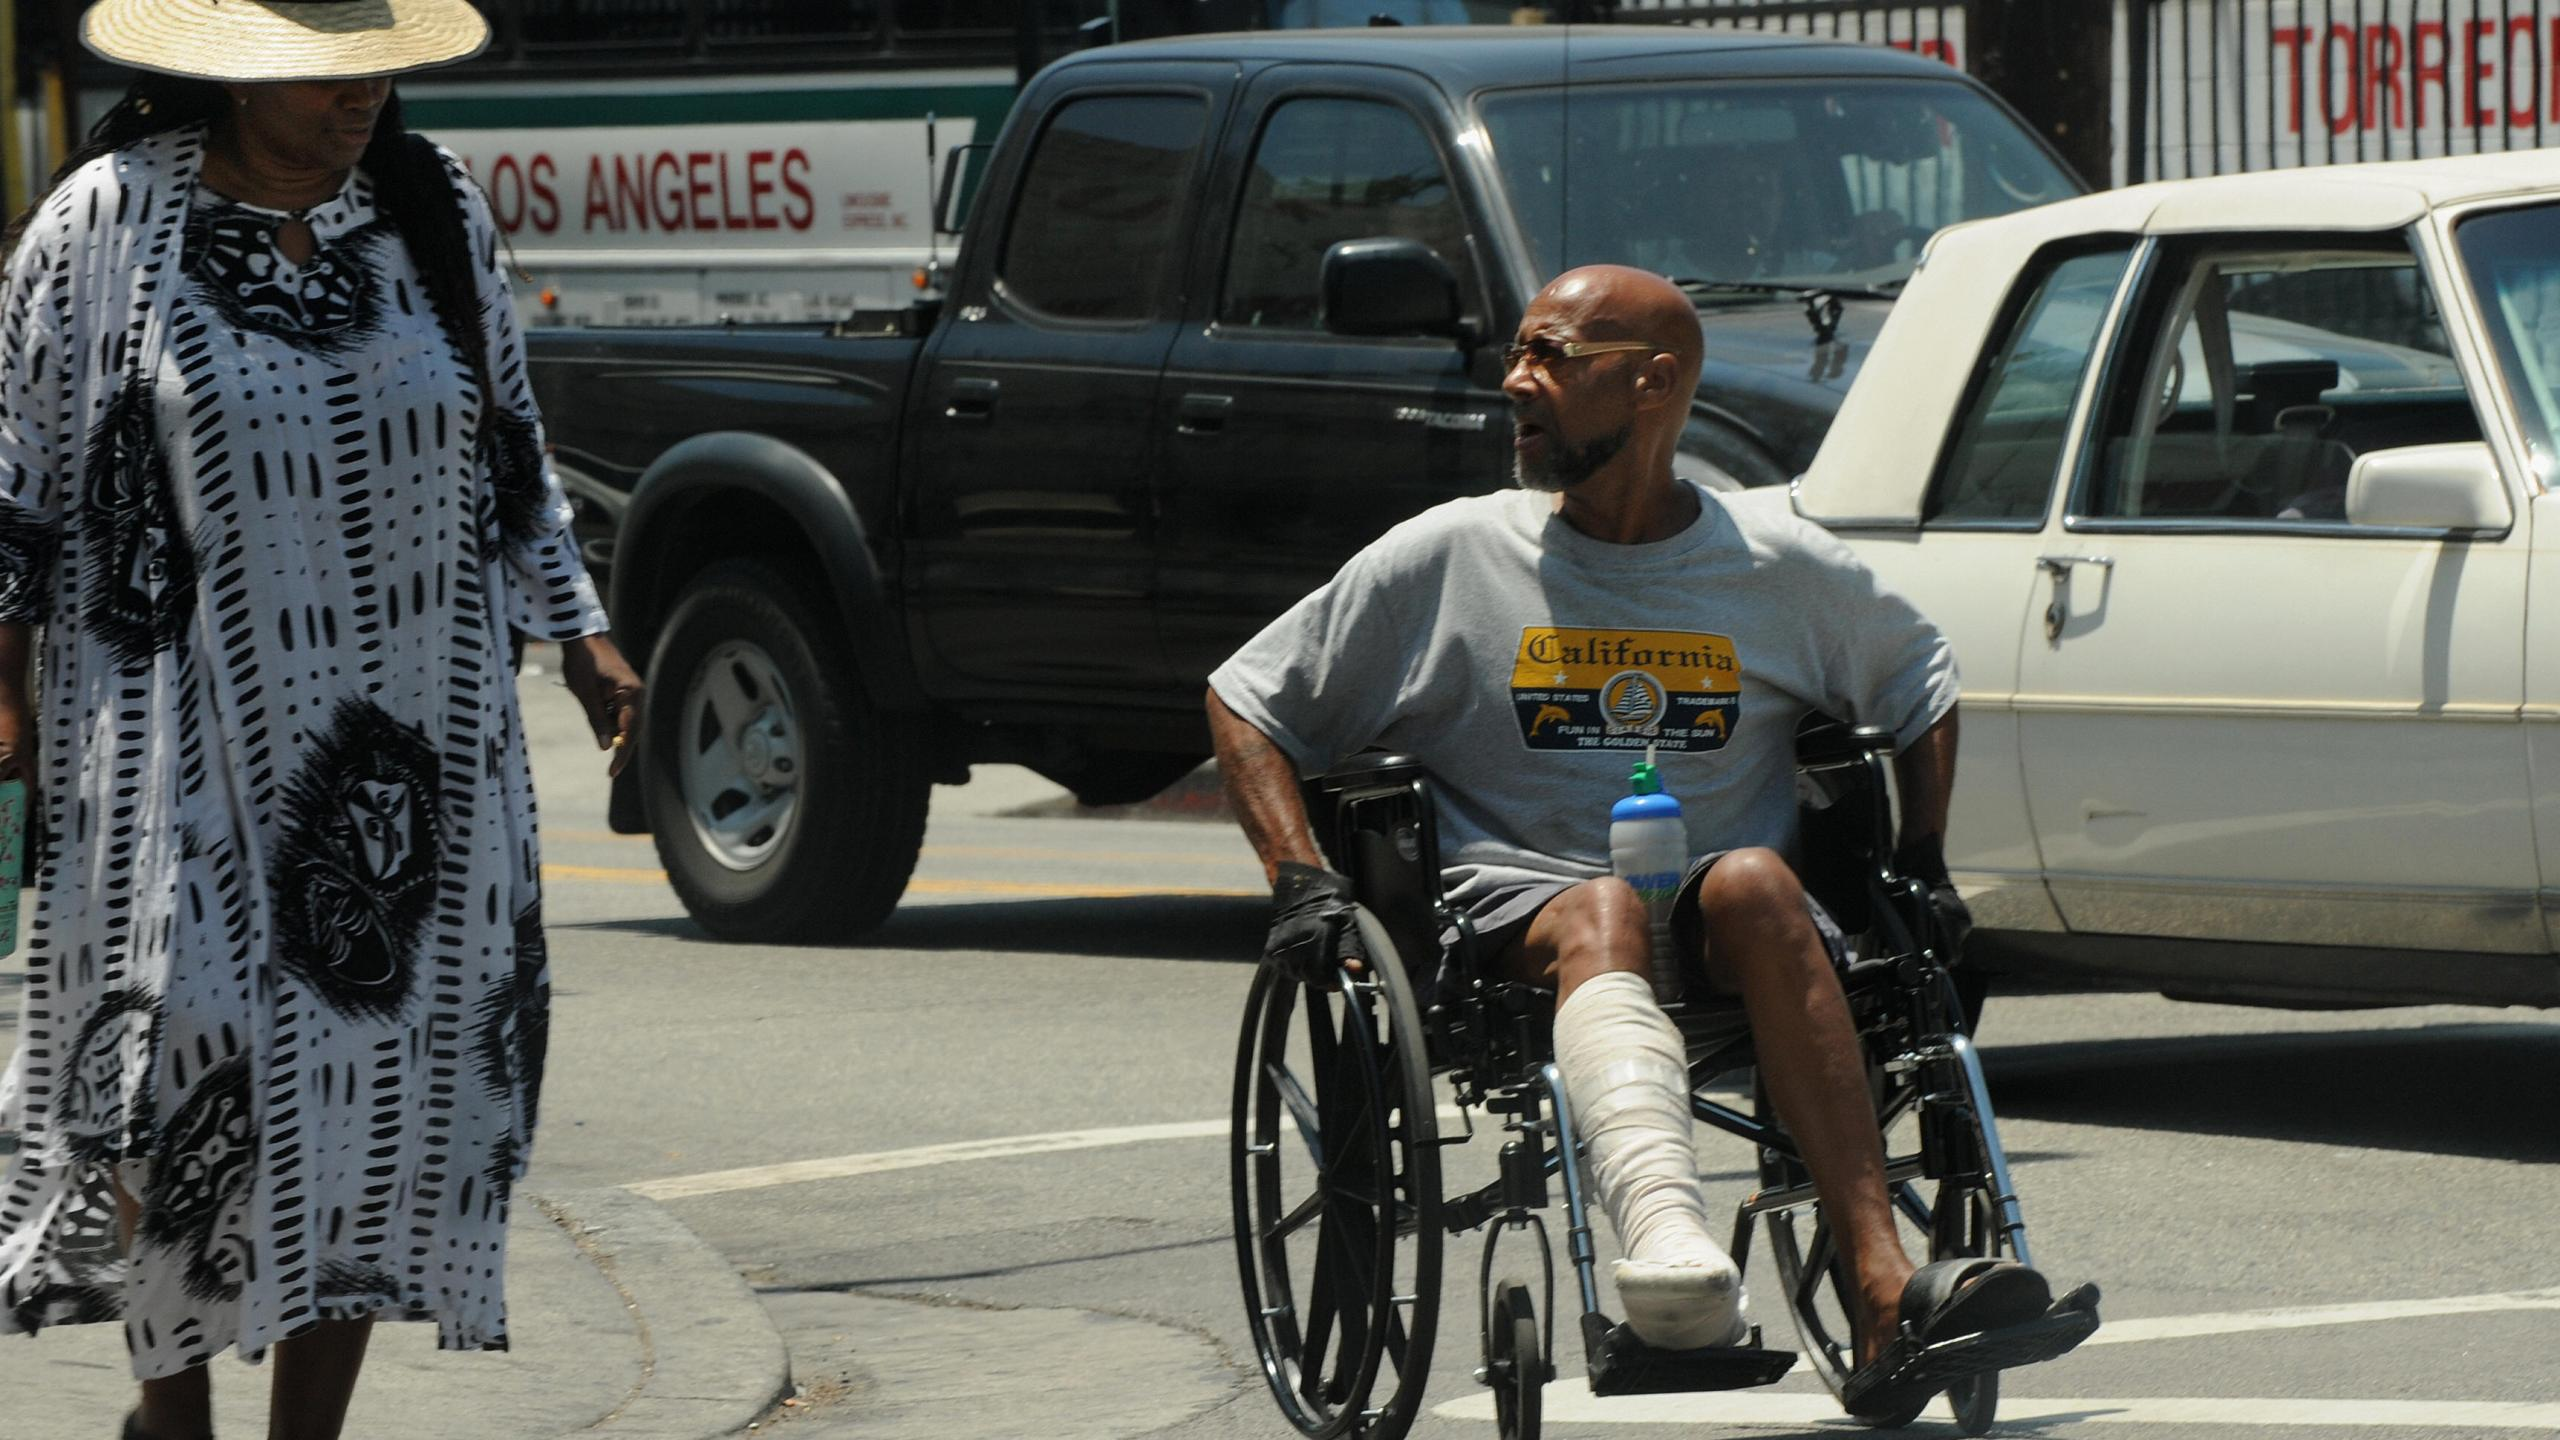 An injured man pushes his wheelchair along a street in the downtown area of Los Angeles on July 22, 2009. (MARK RALSTON/AFP via Getty Images)